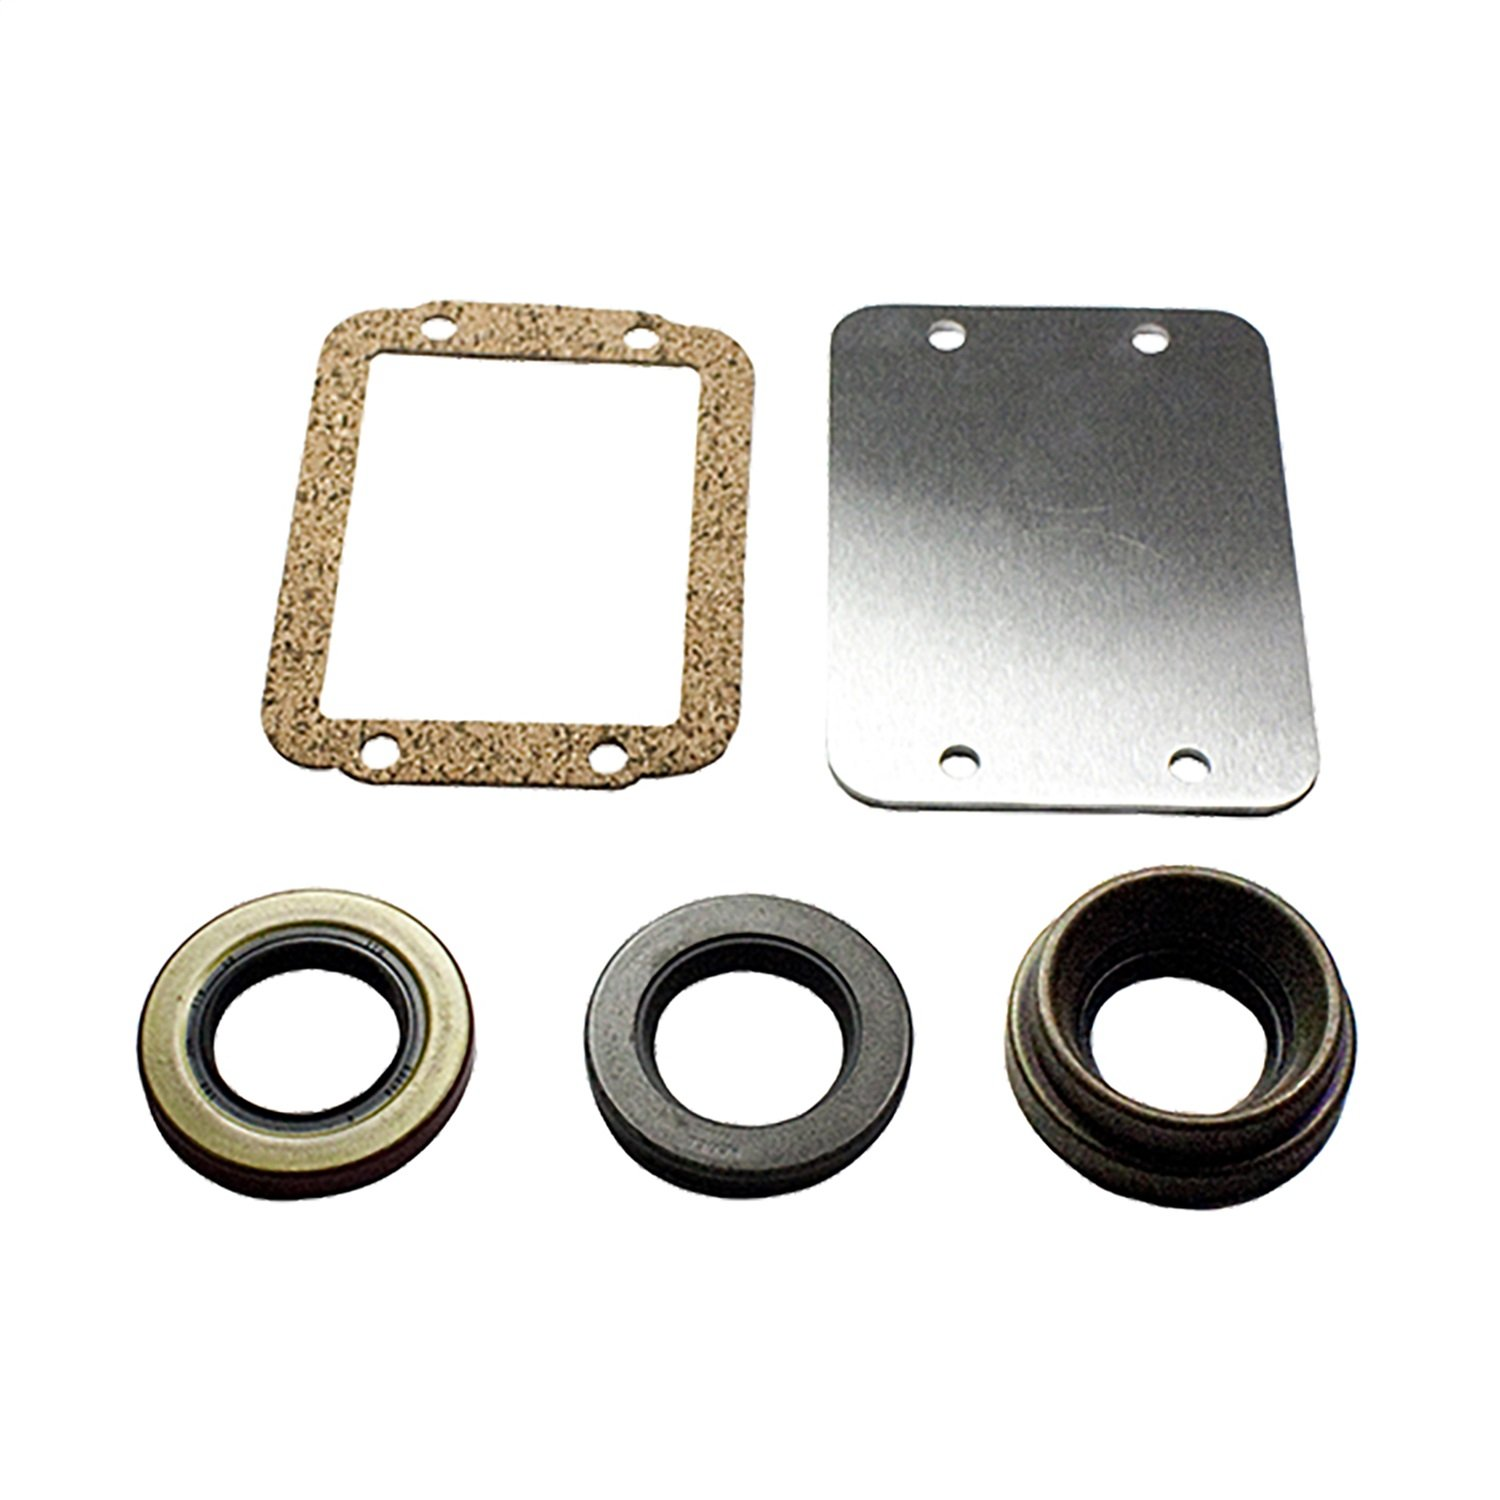 Yukon (YA W39147-KIT) Block-Off Kit for Dana 30 Differential